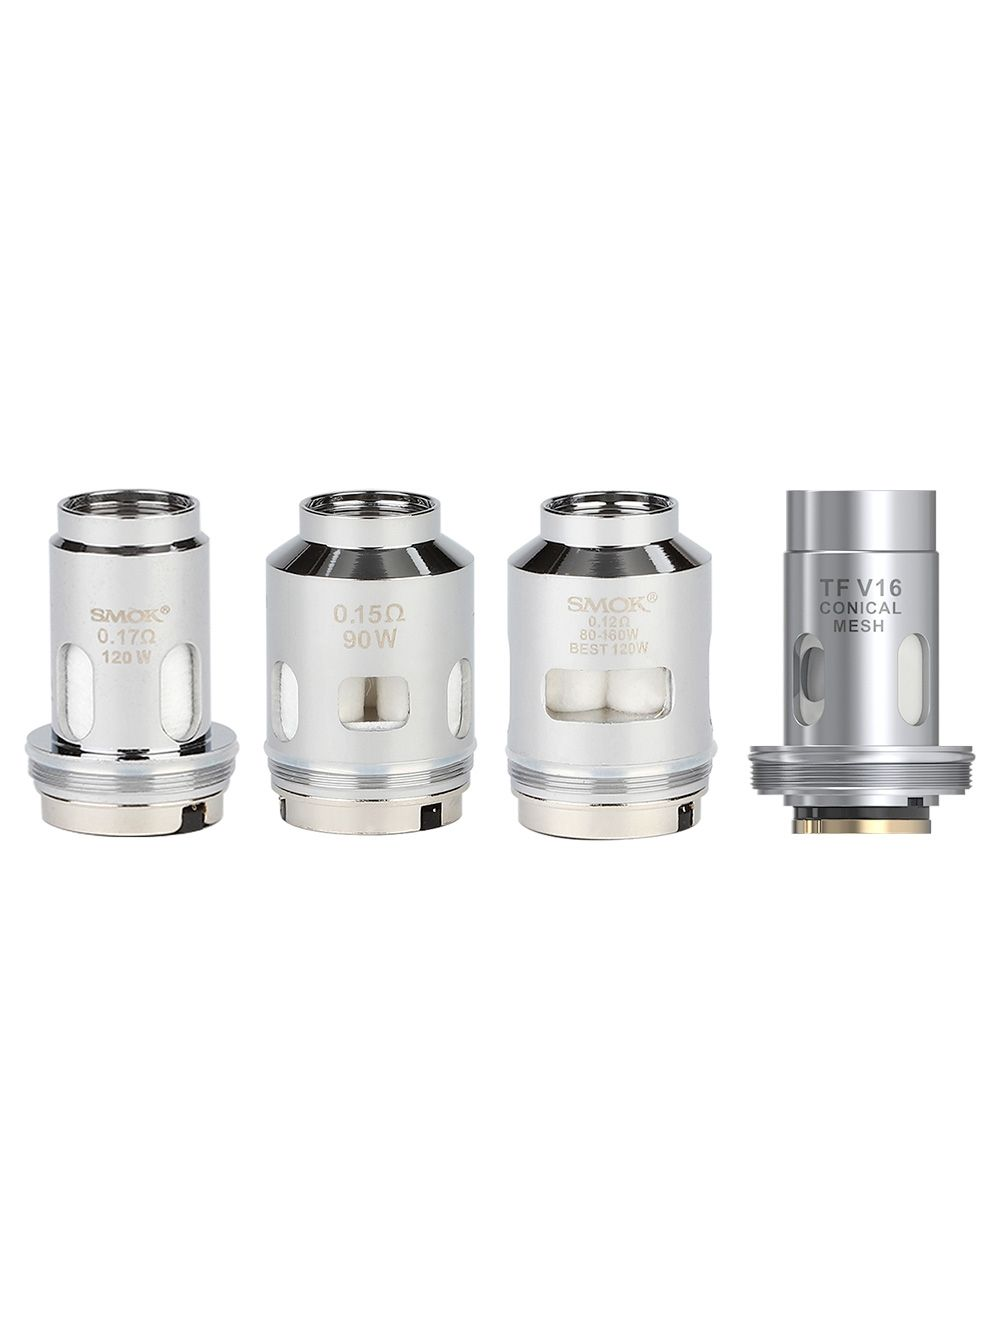 SMOK TFV16 Replacement